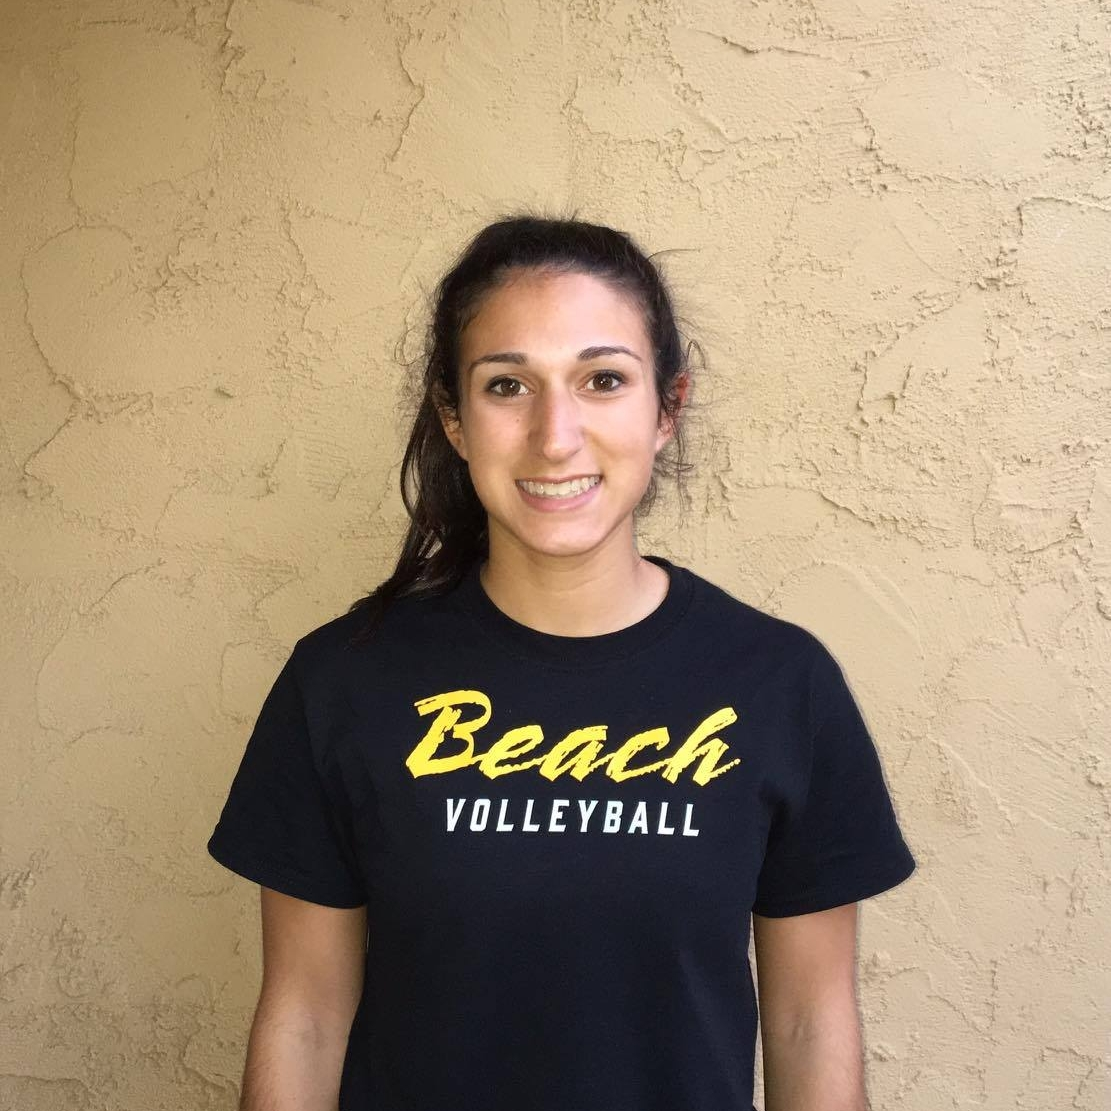 GIGI ALEX - *2017-Present: Assistant Coach, Girls Indoor 14U and 13U at Beach Elite*2016: Head Coach, Girls 14U Beach team at Beach Elite*2017: Beach Player, Cal State University -Long Beach*2017: Indoor Player, Cal State University - Long Beach*College: Cal State Long Beach & University of San Diego